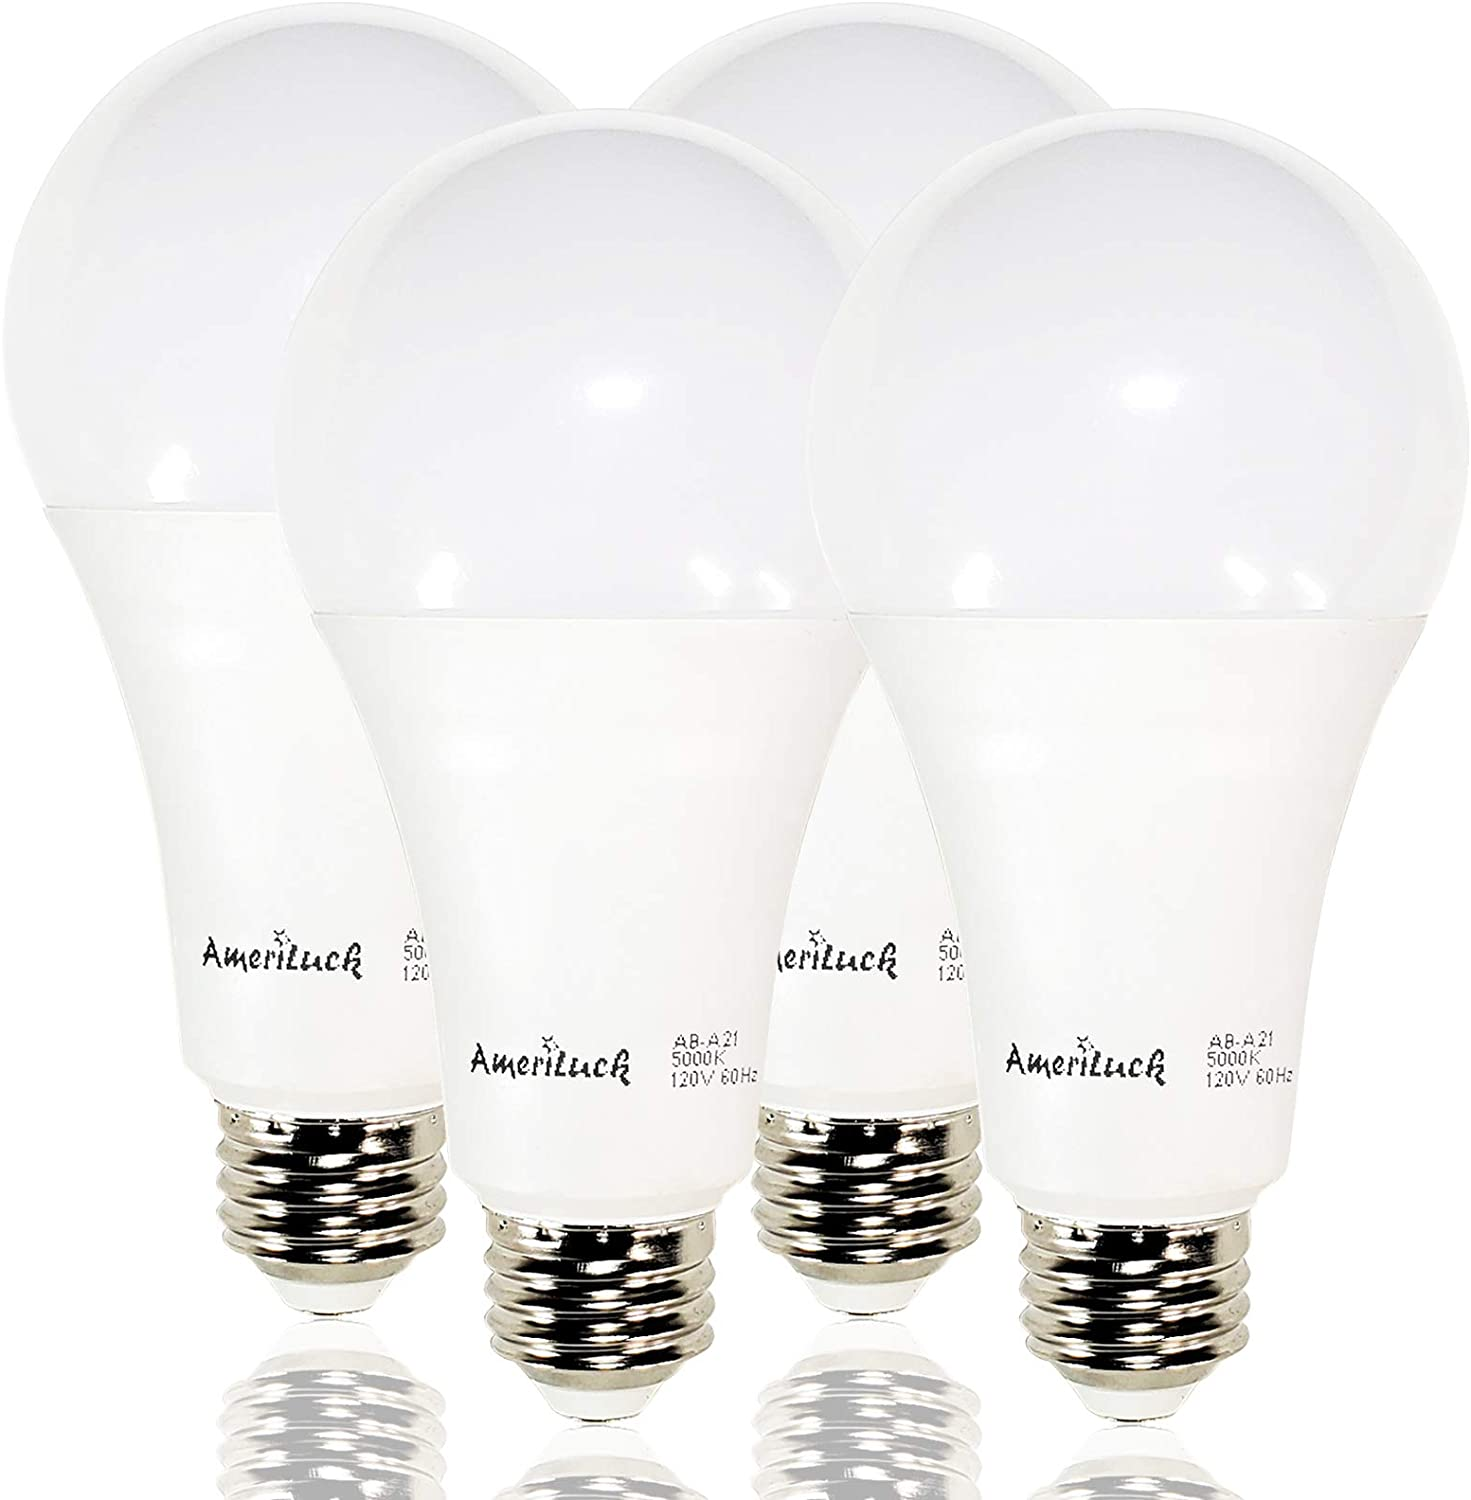 AmeriLuck 150W Equivalent A21 LED Light Bulbs, 2200Lumens 20W, Non-Dimmable (5000K Daylight 4 Pack)